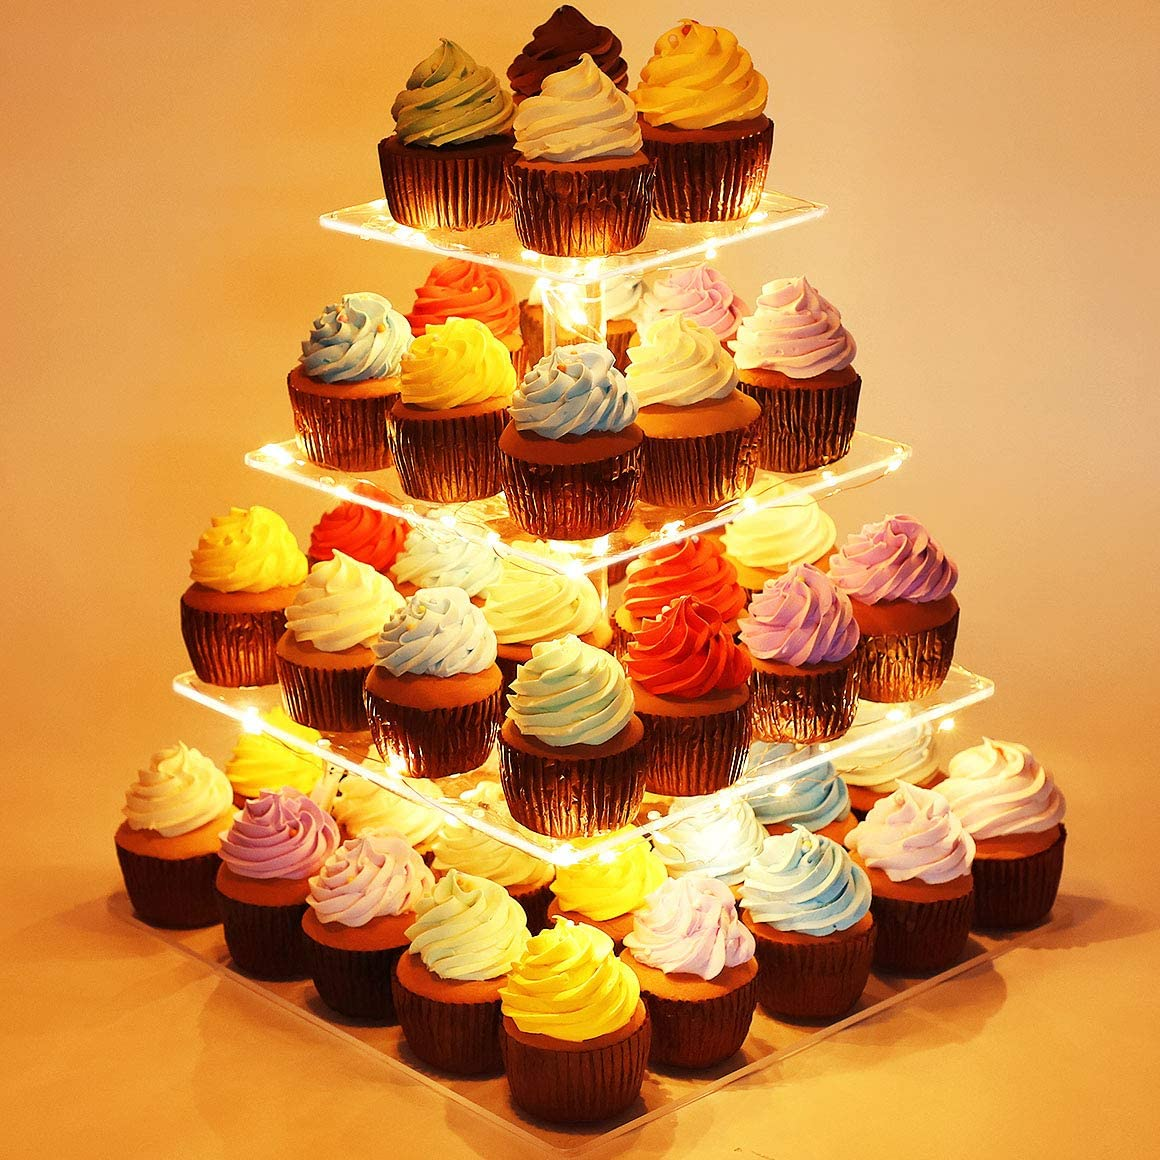 Kootek 4 Tier Square Cupcake Stand with LED String Light Acrylic Dessert Tower Tiered Tree Cake Display Stands Pastry Serving Platter and 4 Pcs Batteriesfor Wedding Birthday Holidays (Yellow)